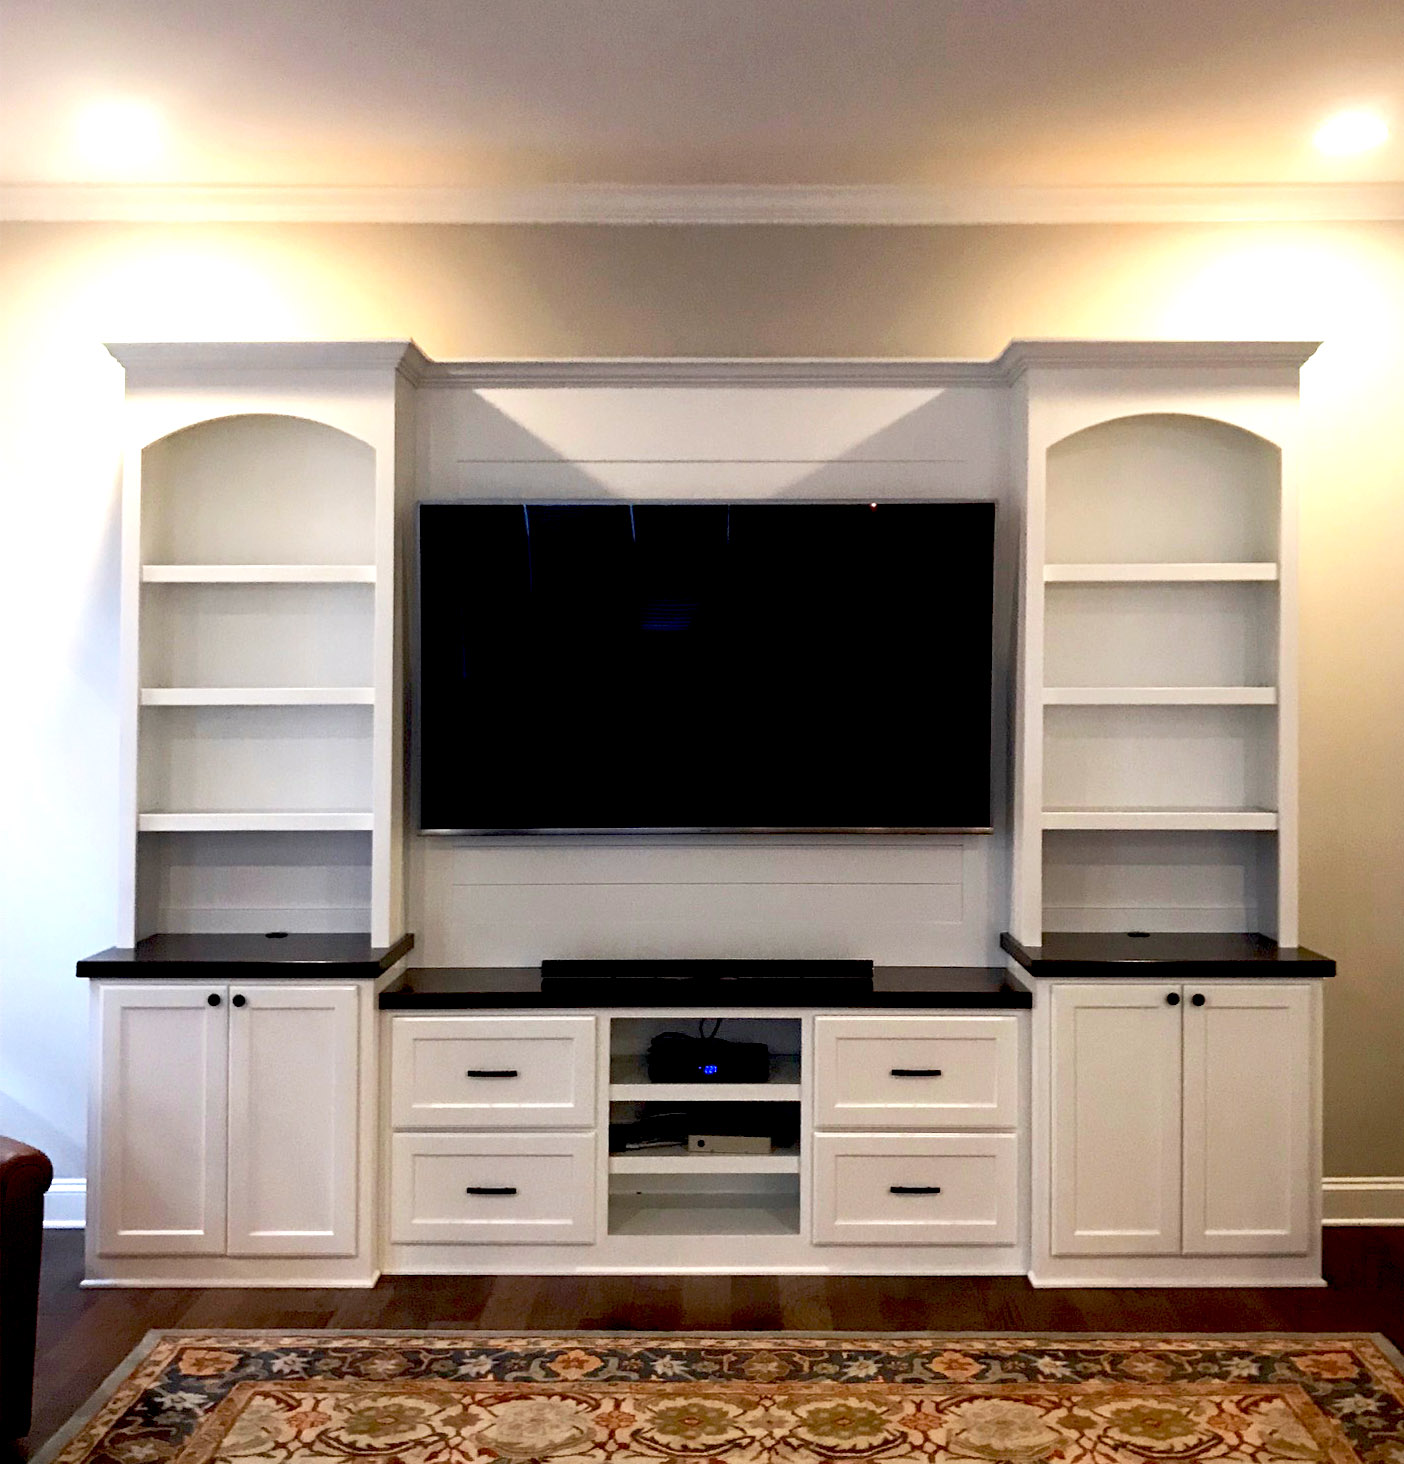 Built-In with Arches, Shiplap Backer, Shaker Doors & Drawers, Console & TV Openings, Stain Countertops, and Crown